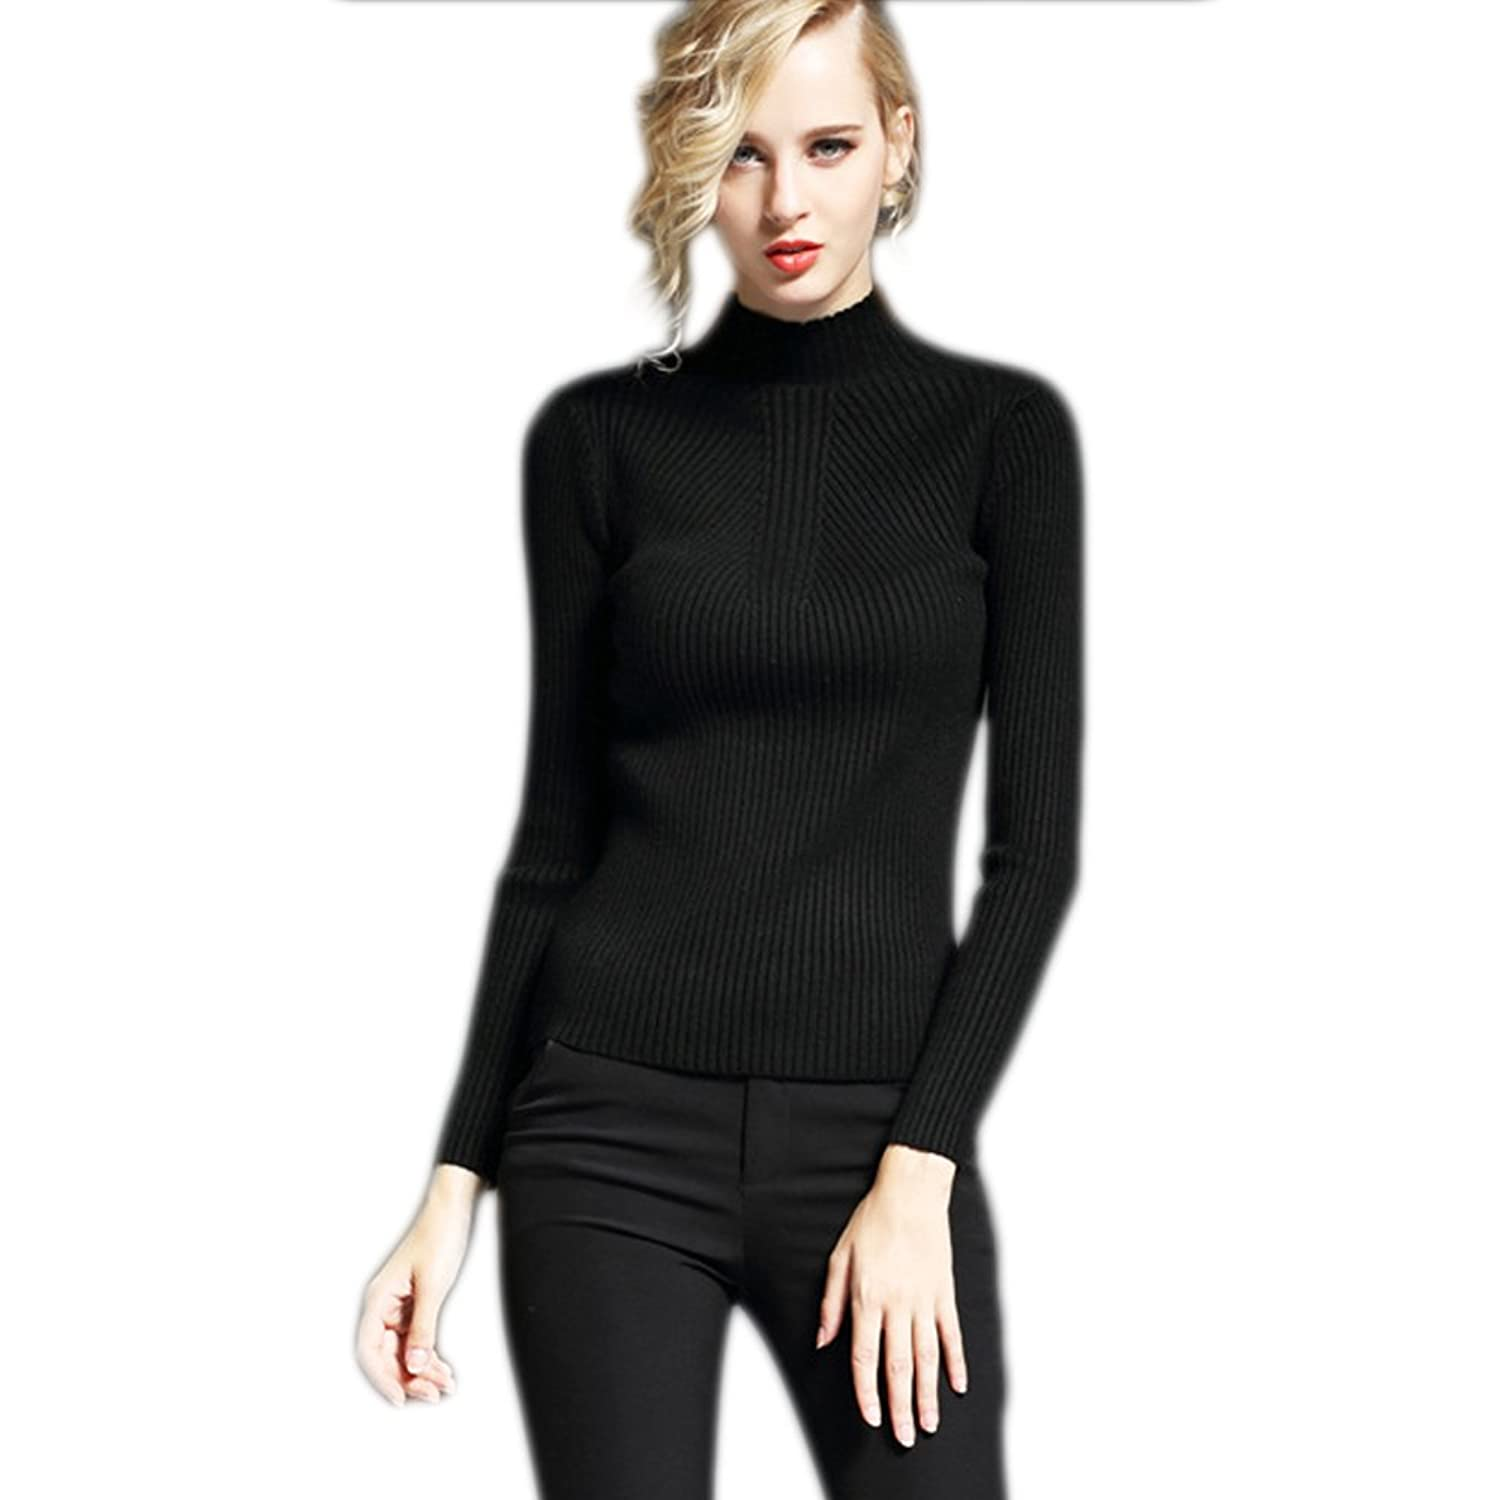 Cestvue Women's Stretchy Line Design Turtleneck pullover sweaters Sweater